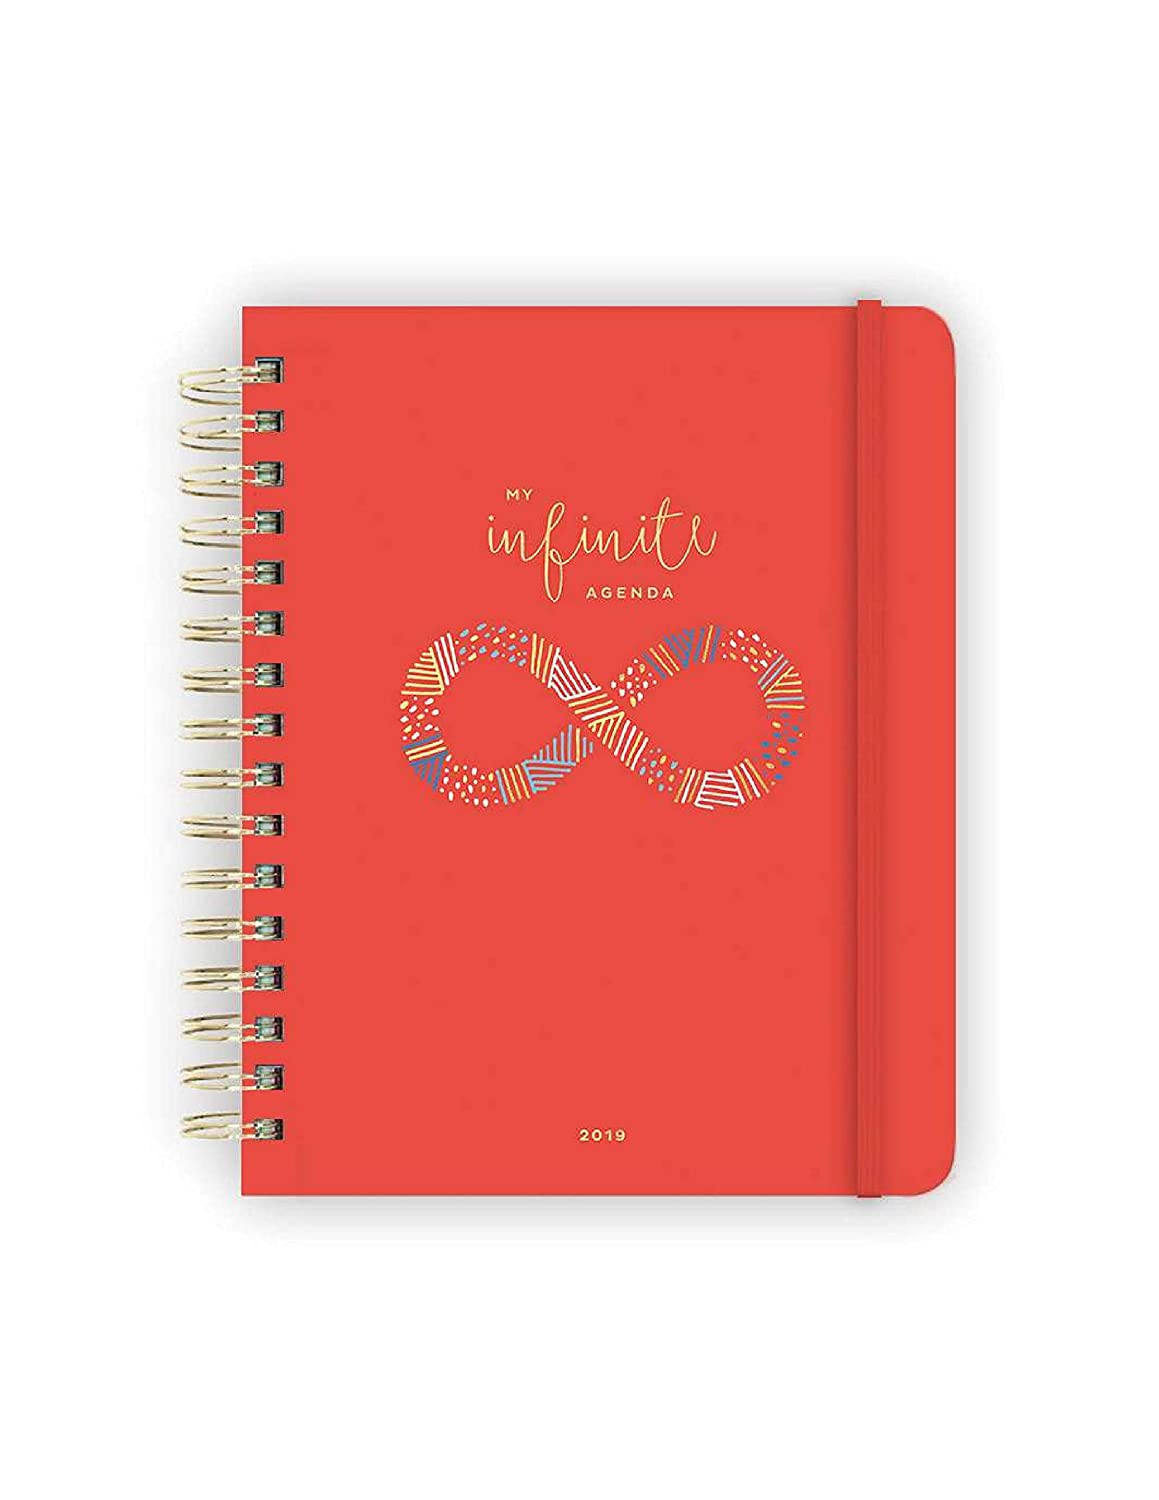 Amazon.com: My Infinite Agenda (2019): Office Products